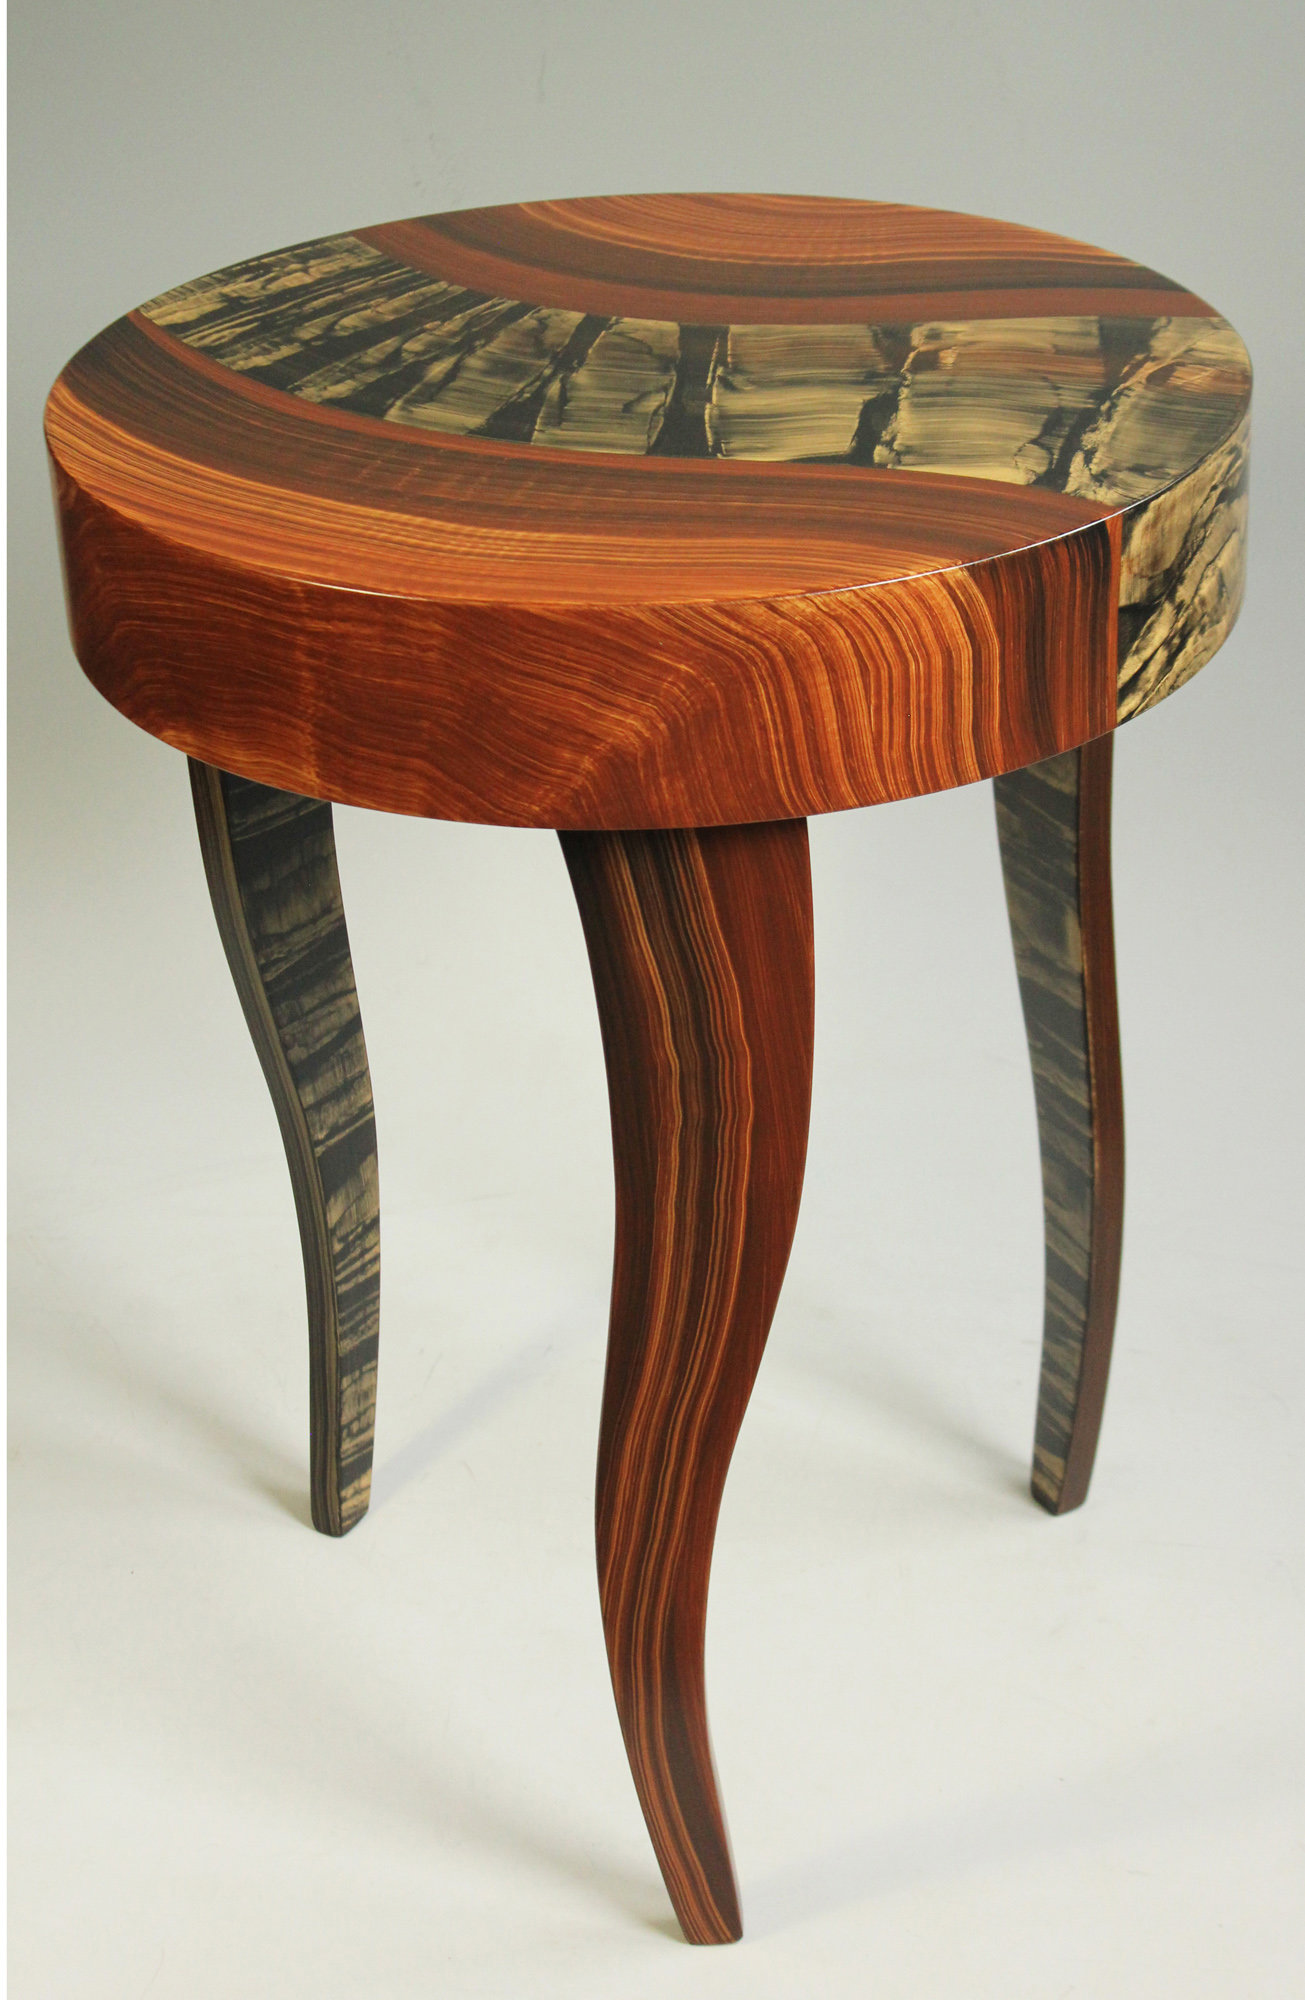 Tiger River Round Table By Ingela Noren And Daniel Grant